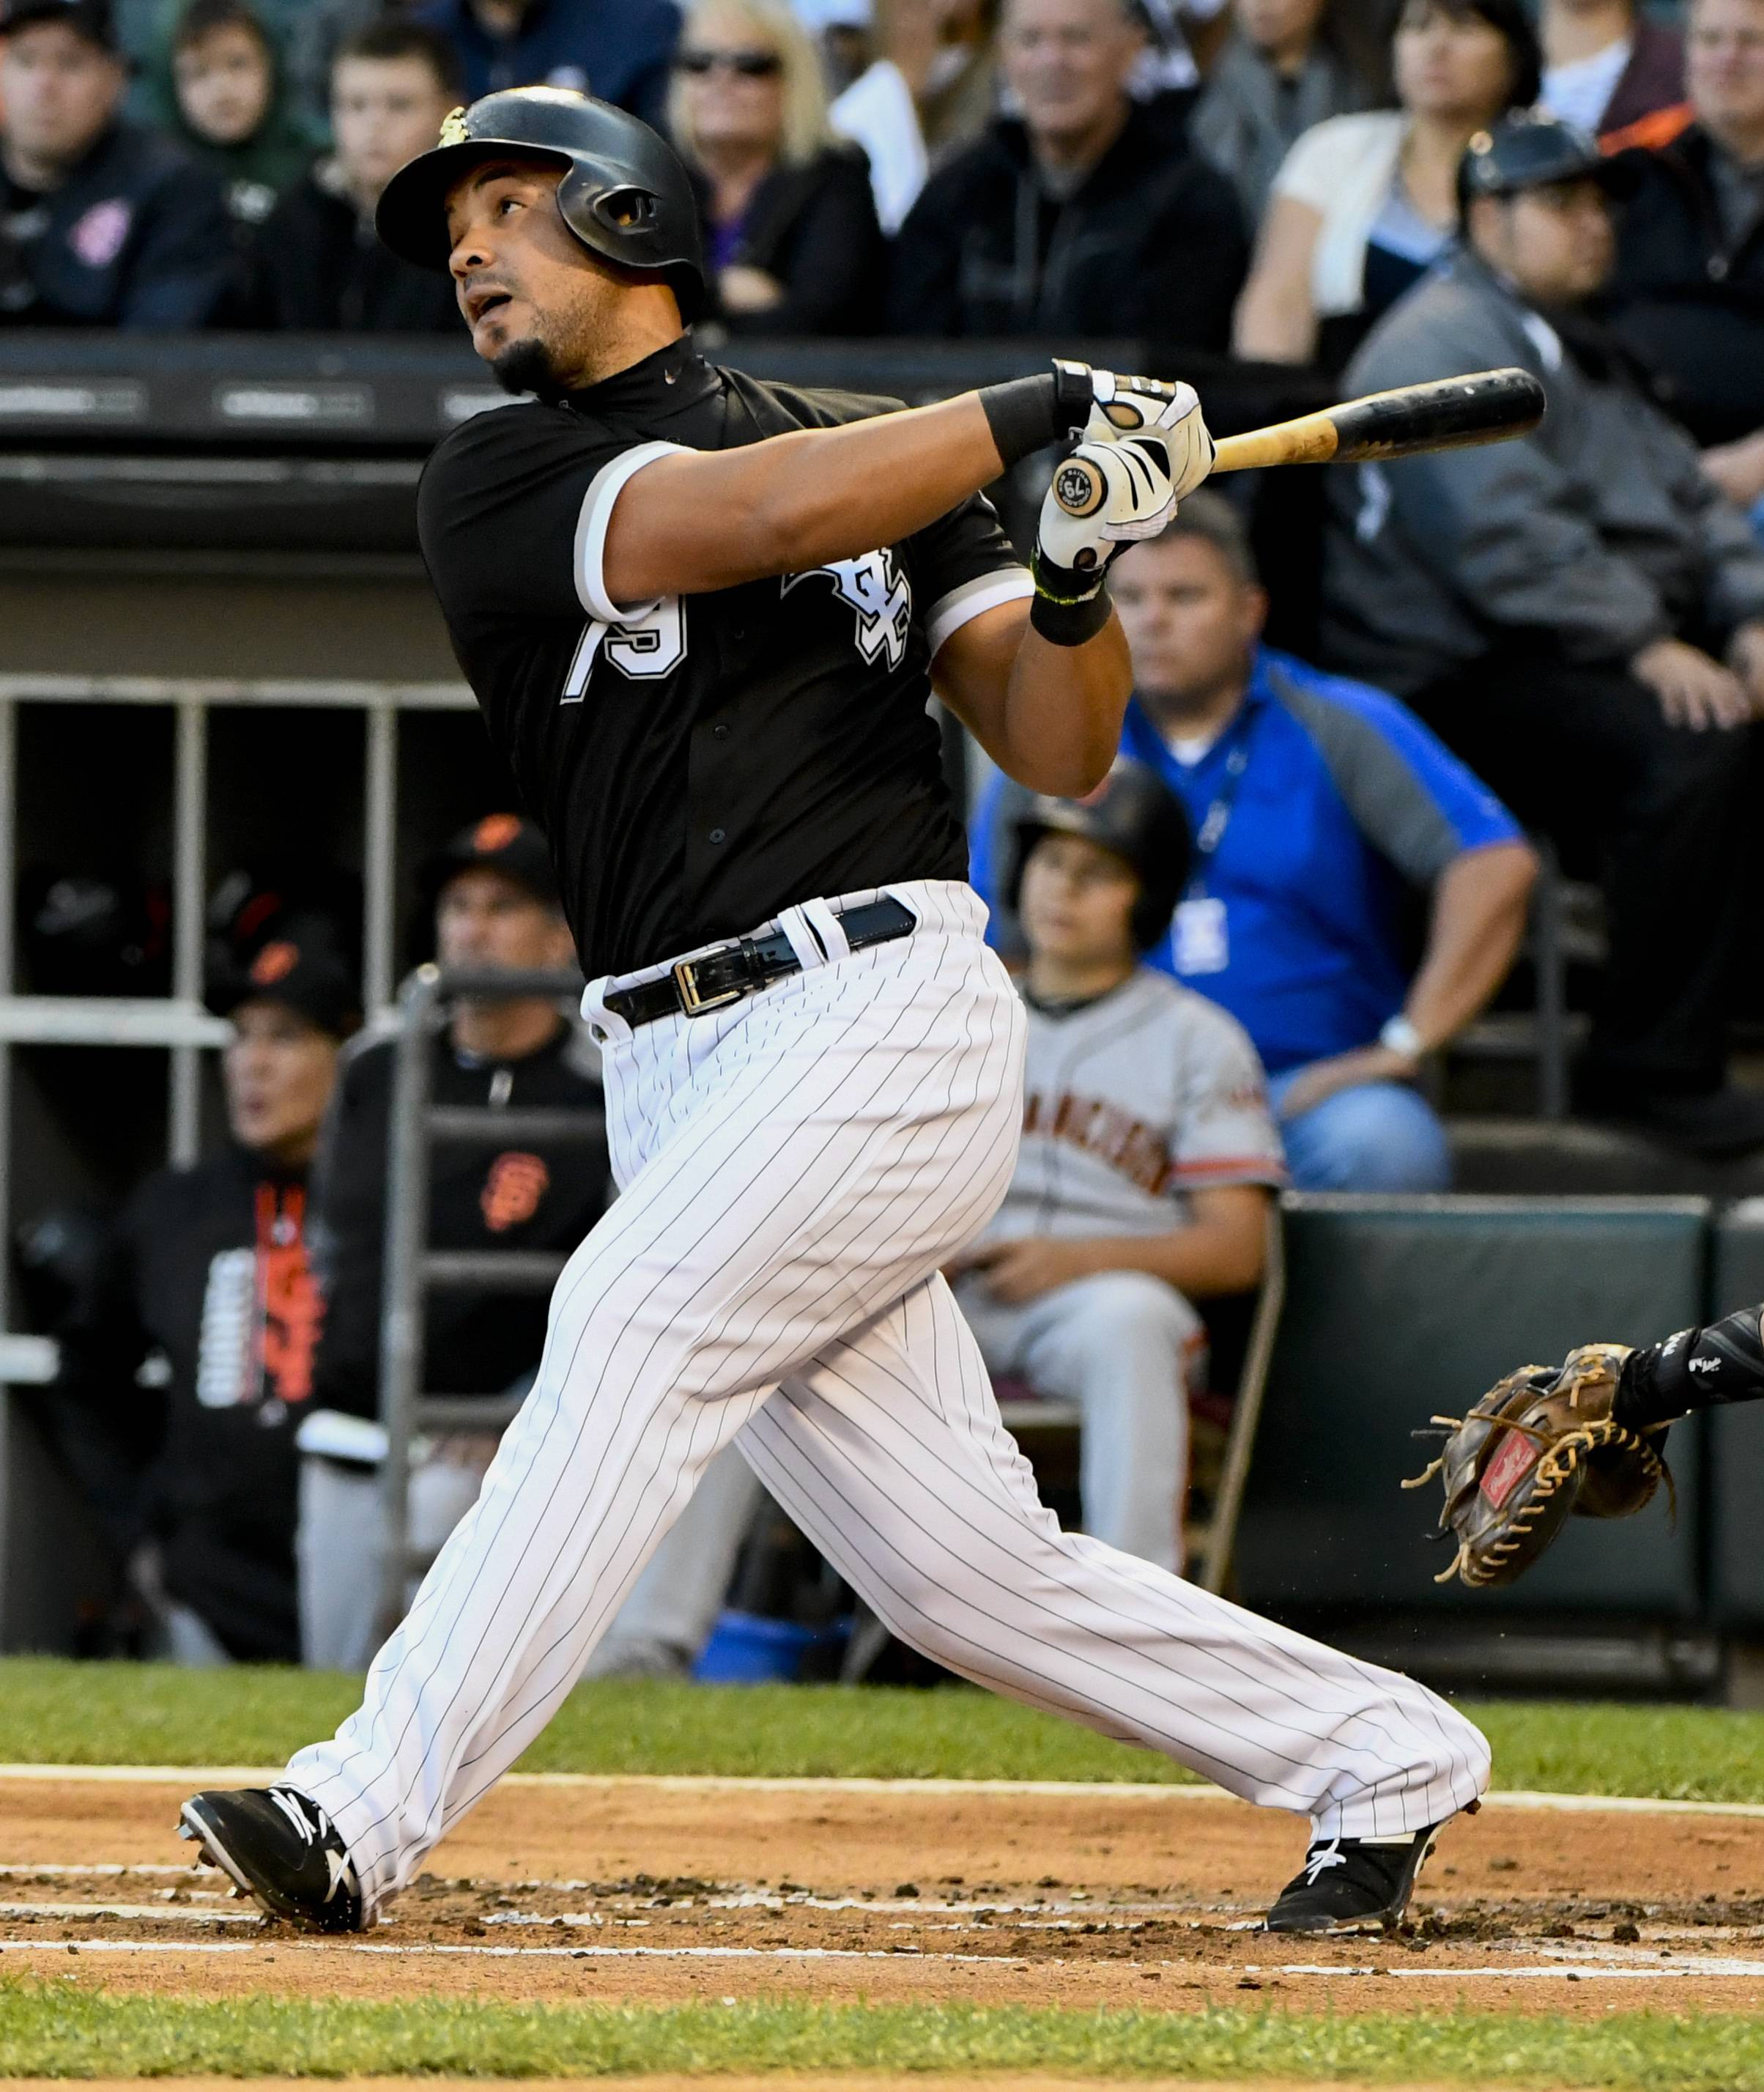 Chicago White Sox's Jose Abreu watches his solo home run against the San Francisco Giants during the first inning of a baseball game in Chicago on Saturday, Sept. 9, 2017. (AP Photo/Matt Marton)